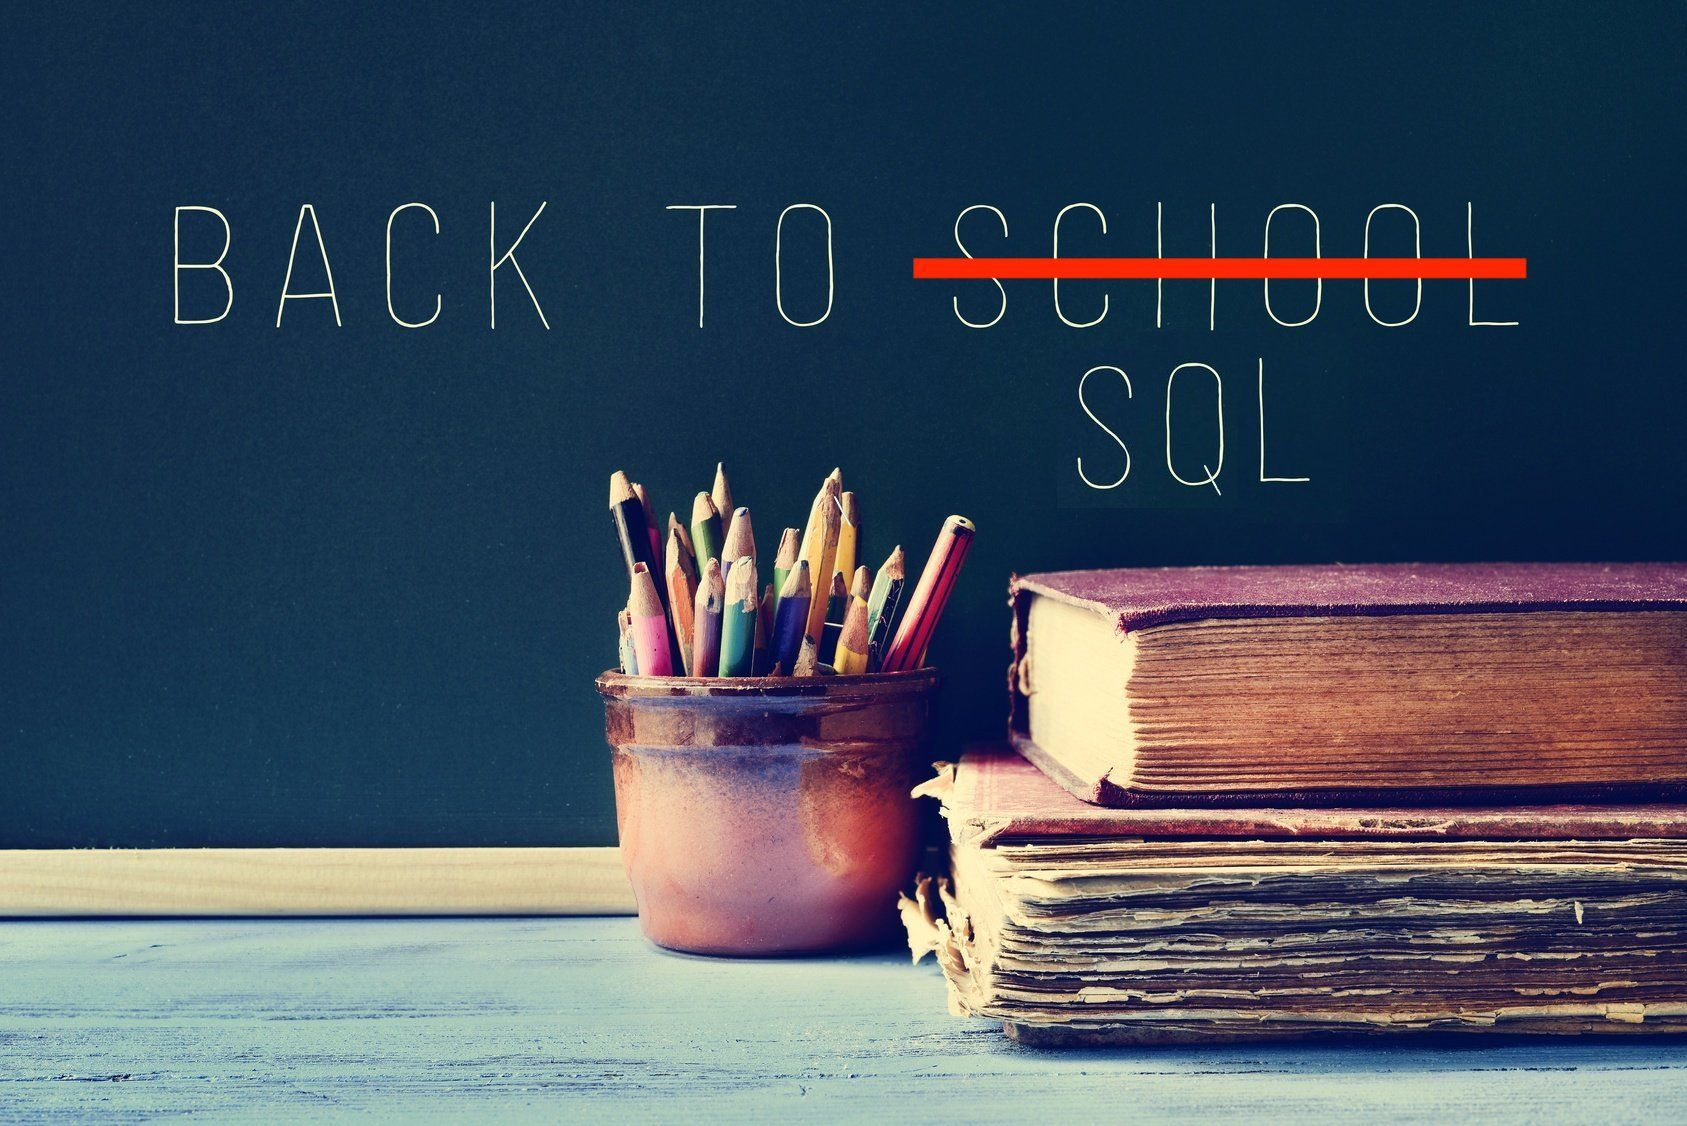 /sql-and-database-management-skills-should-be-introduced-into-school-curriculums-nu9k35sy feature image